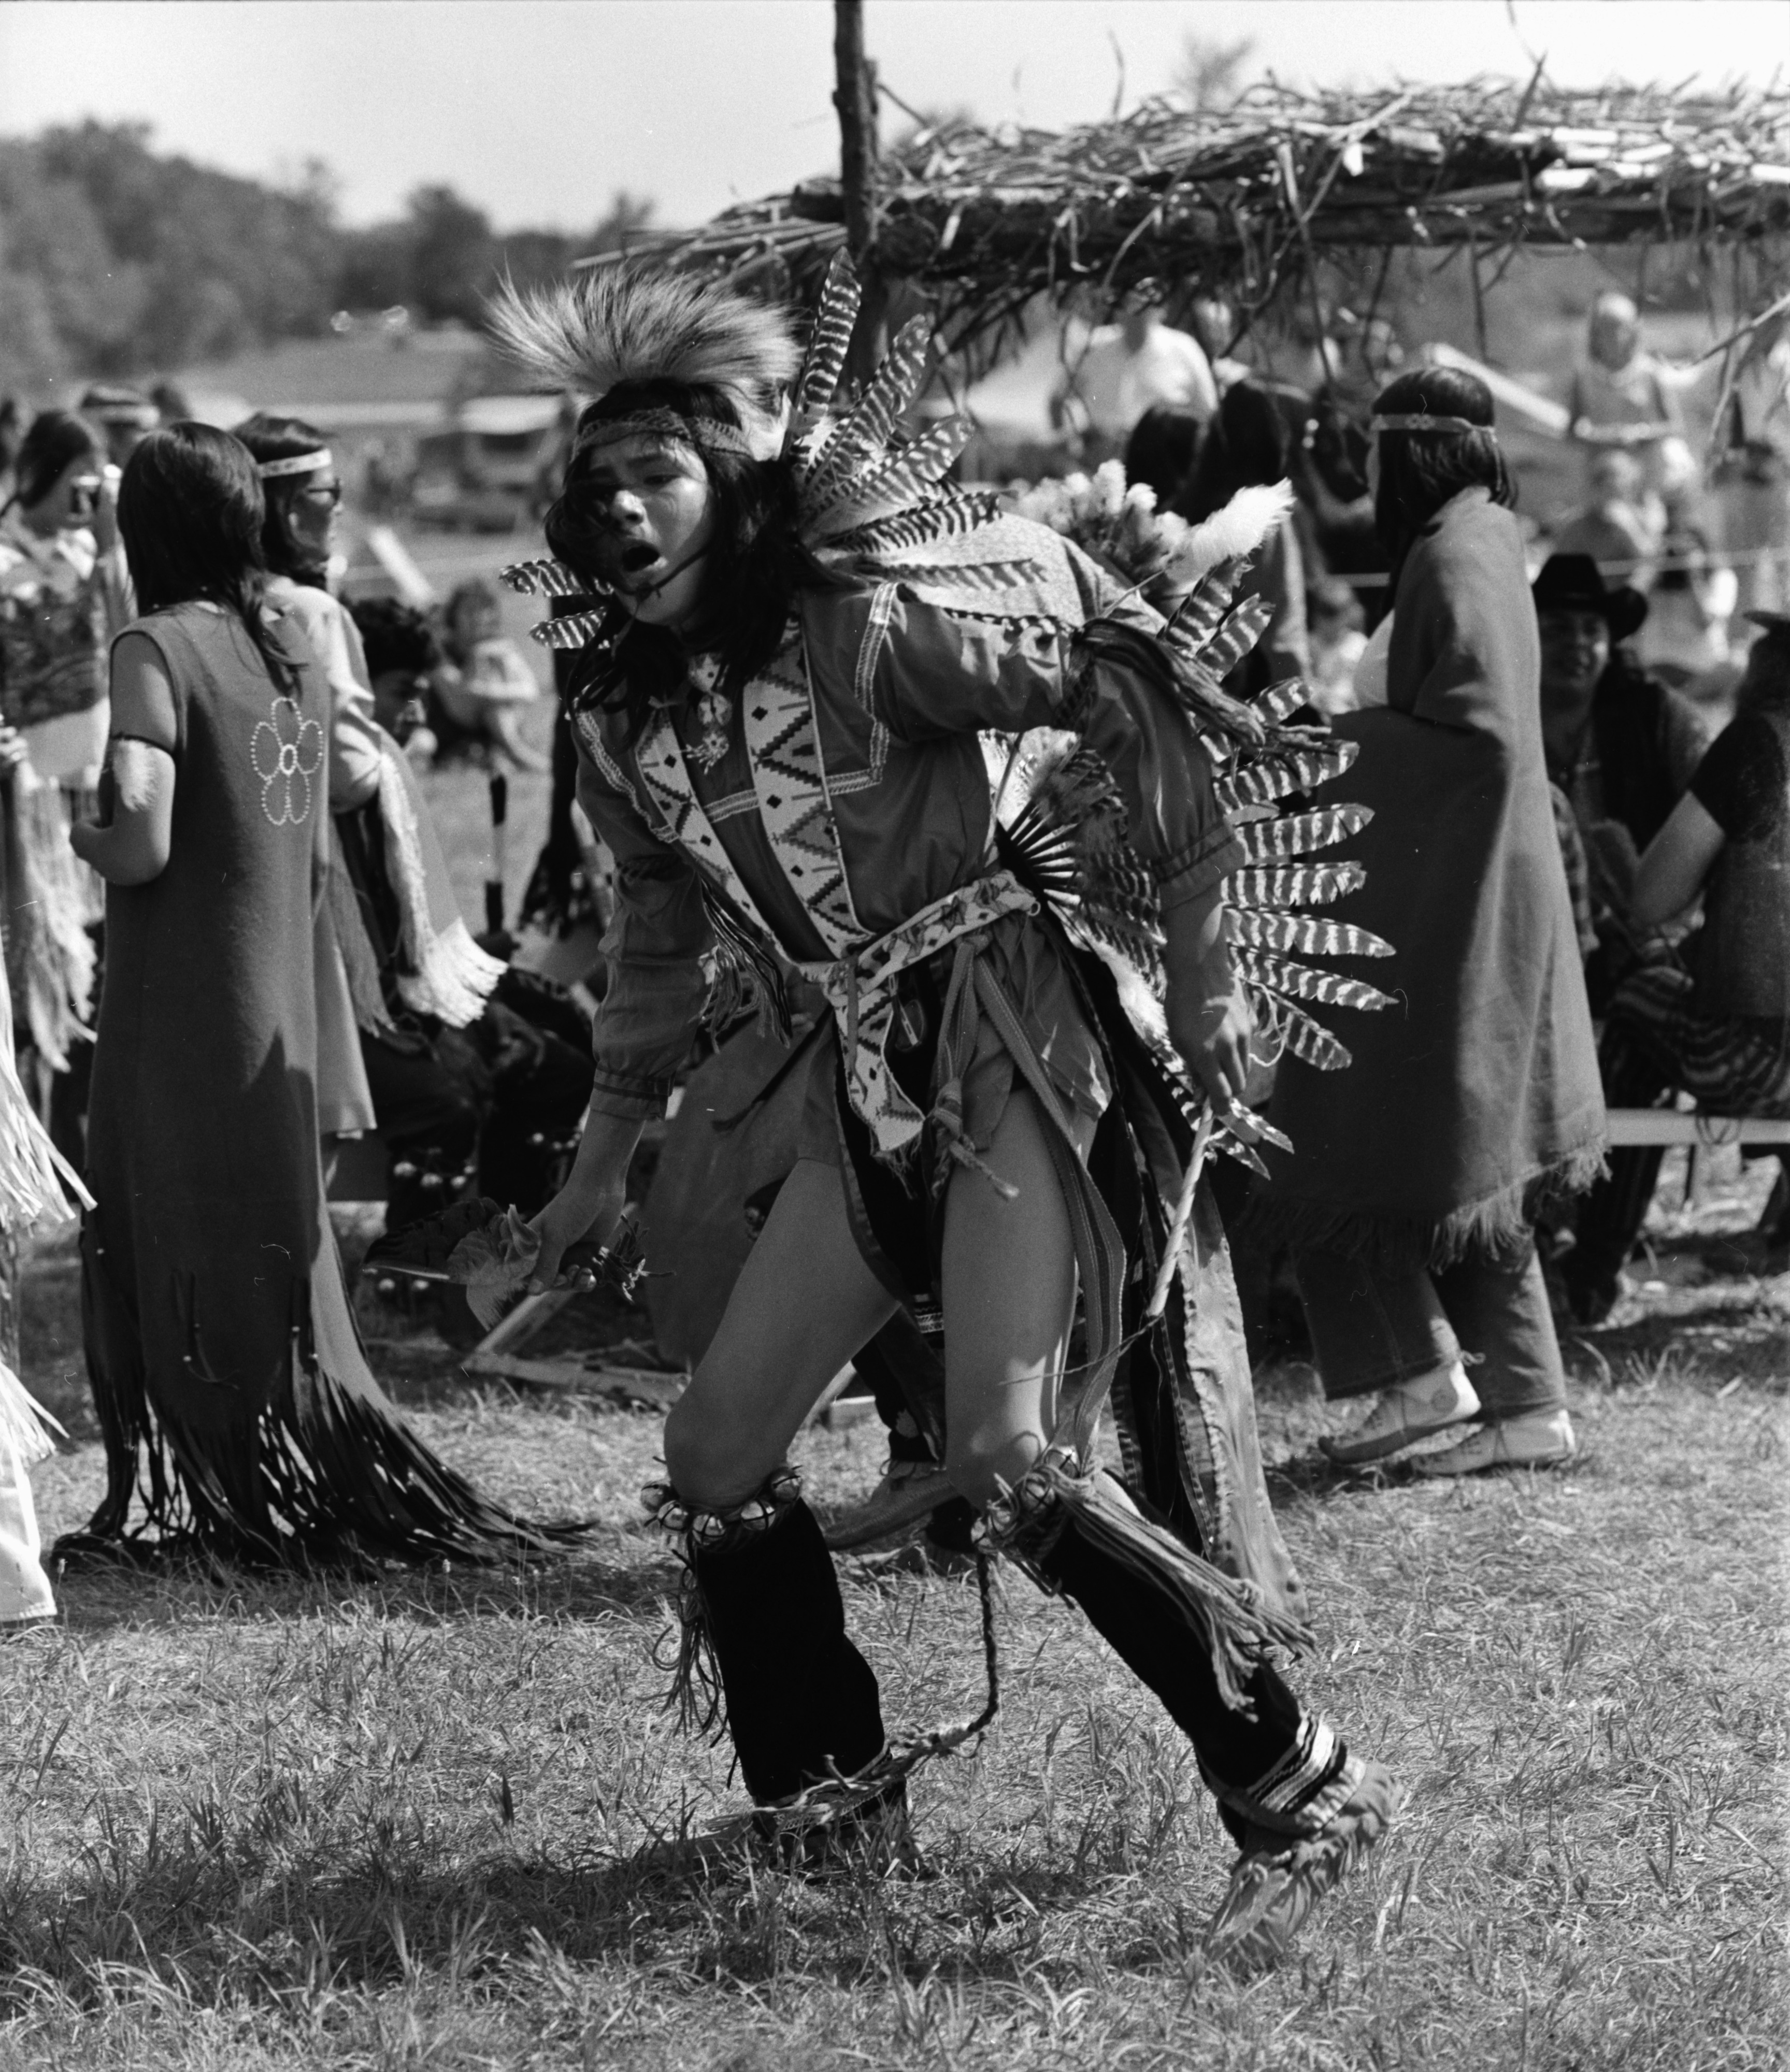 Dancer, Michigan Indian Powwow at Knights of Columbus Park, Dexter Rd., August 1971 image